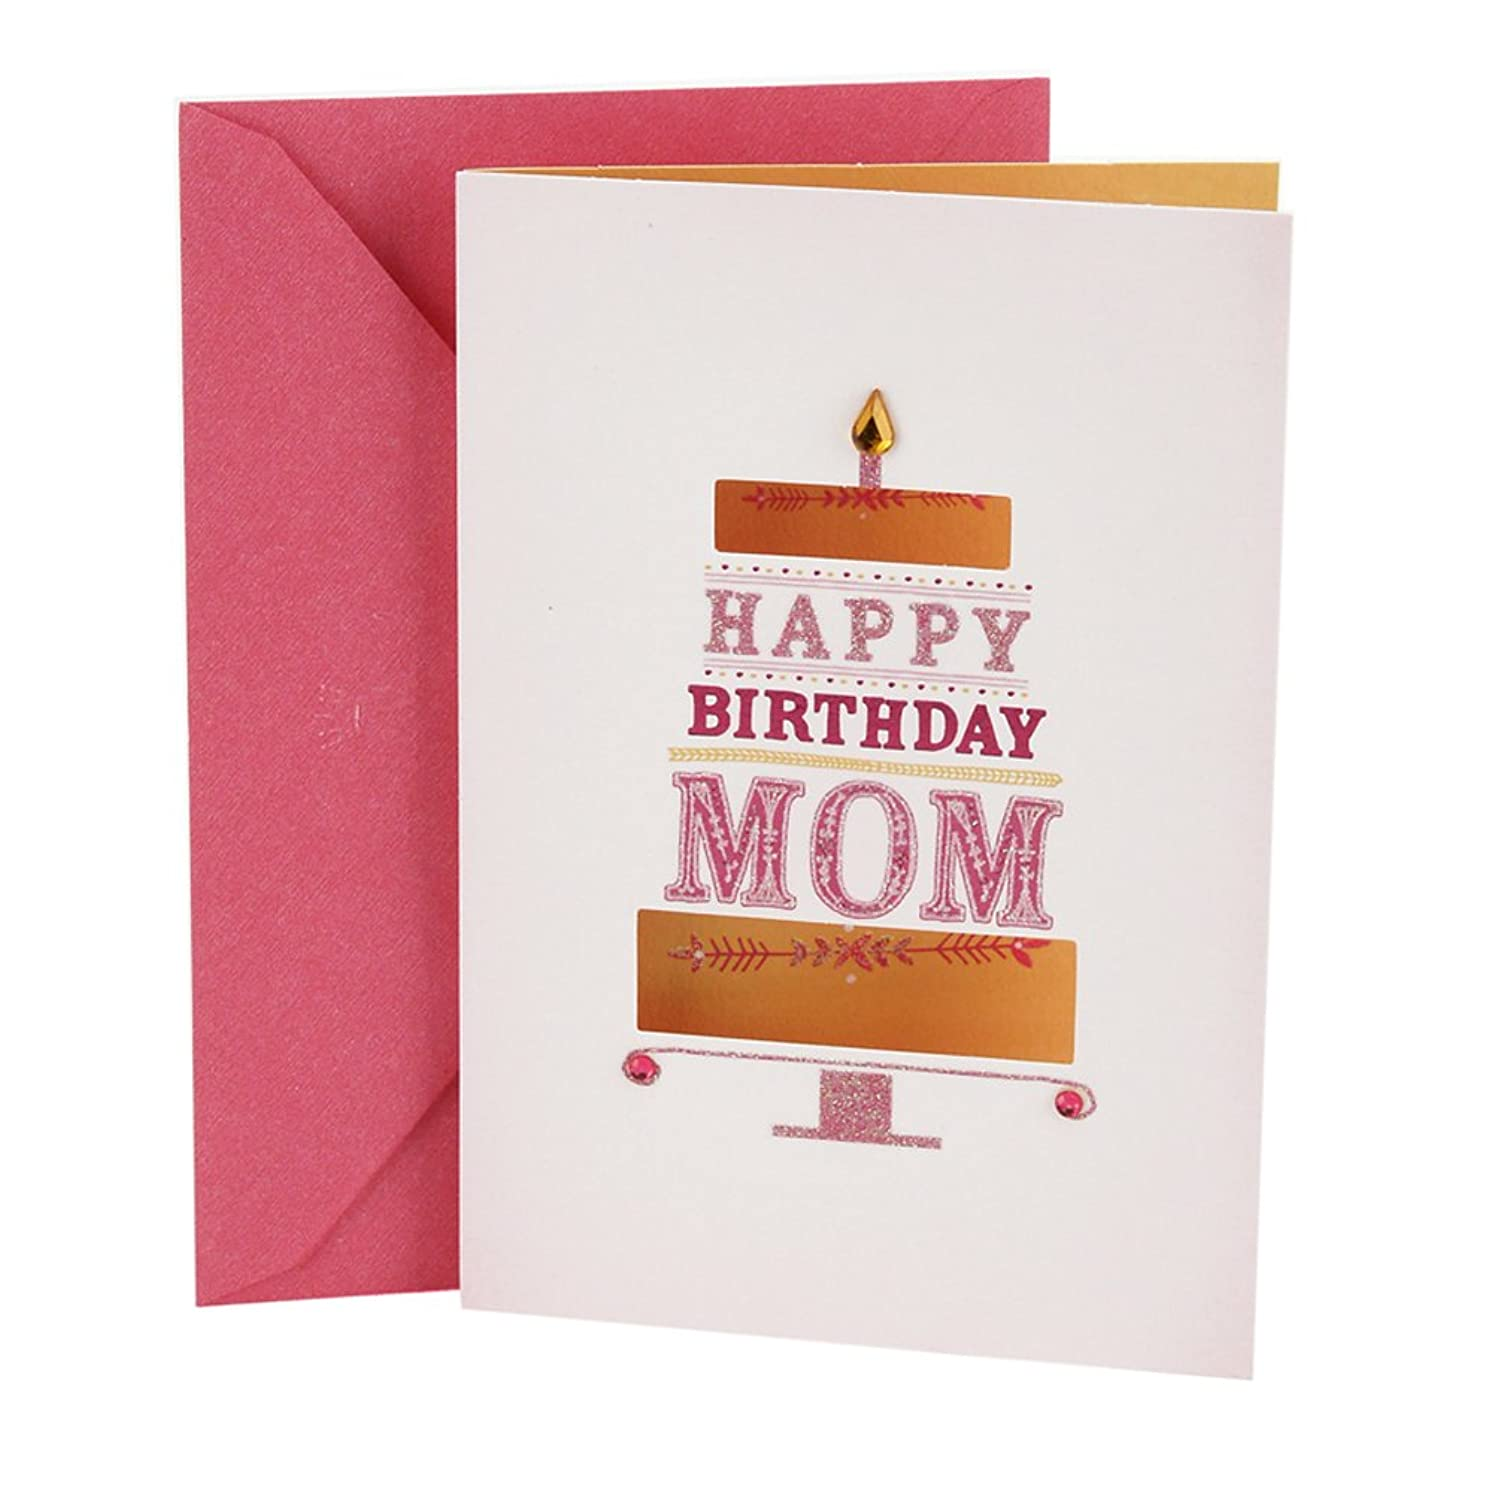 Hallmark Birthday Card for Mom (Pink and Gold Cake)